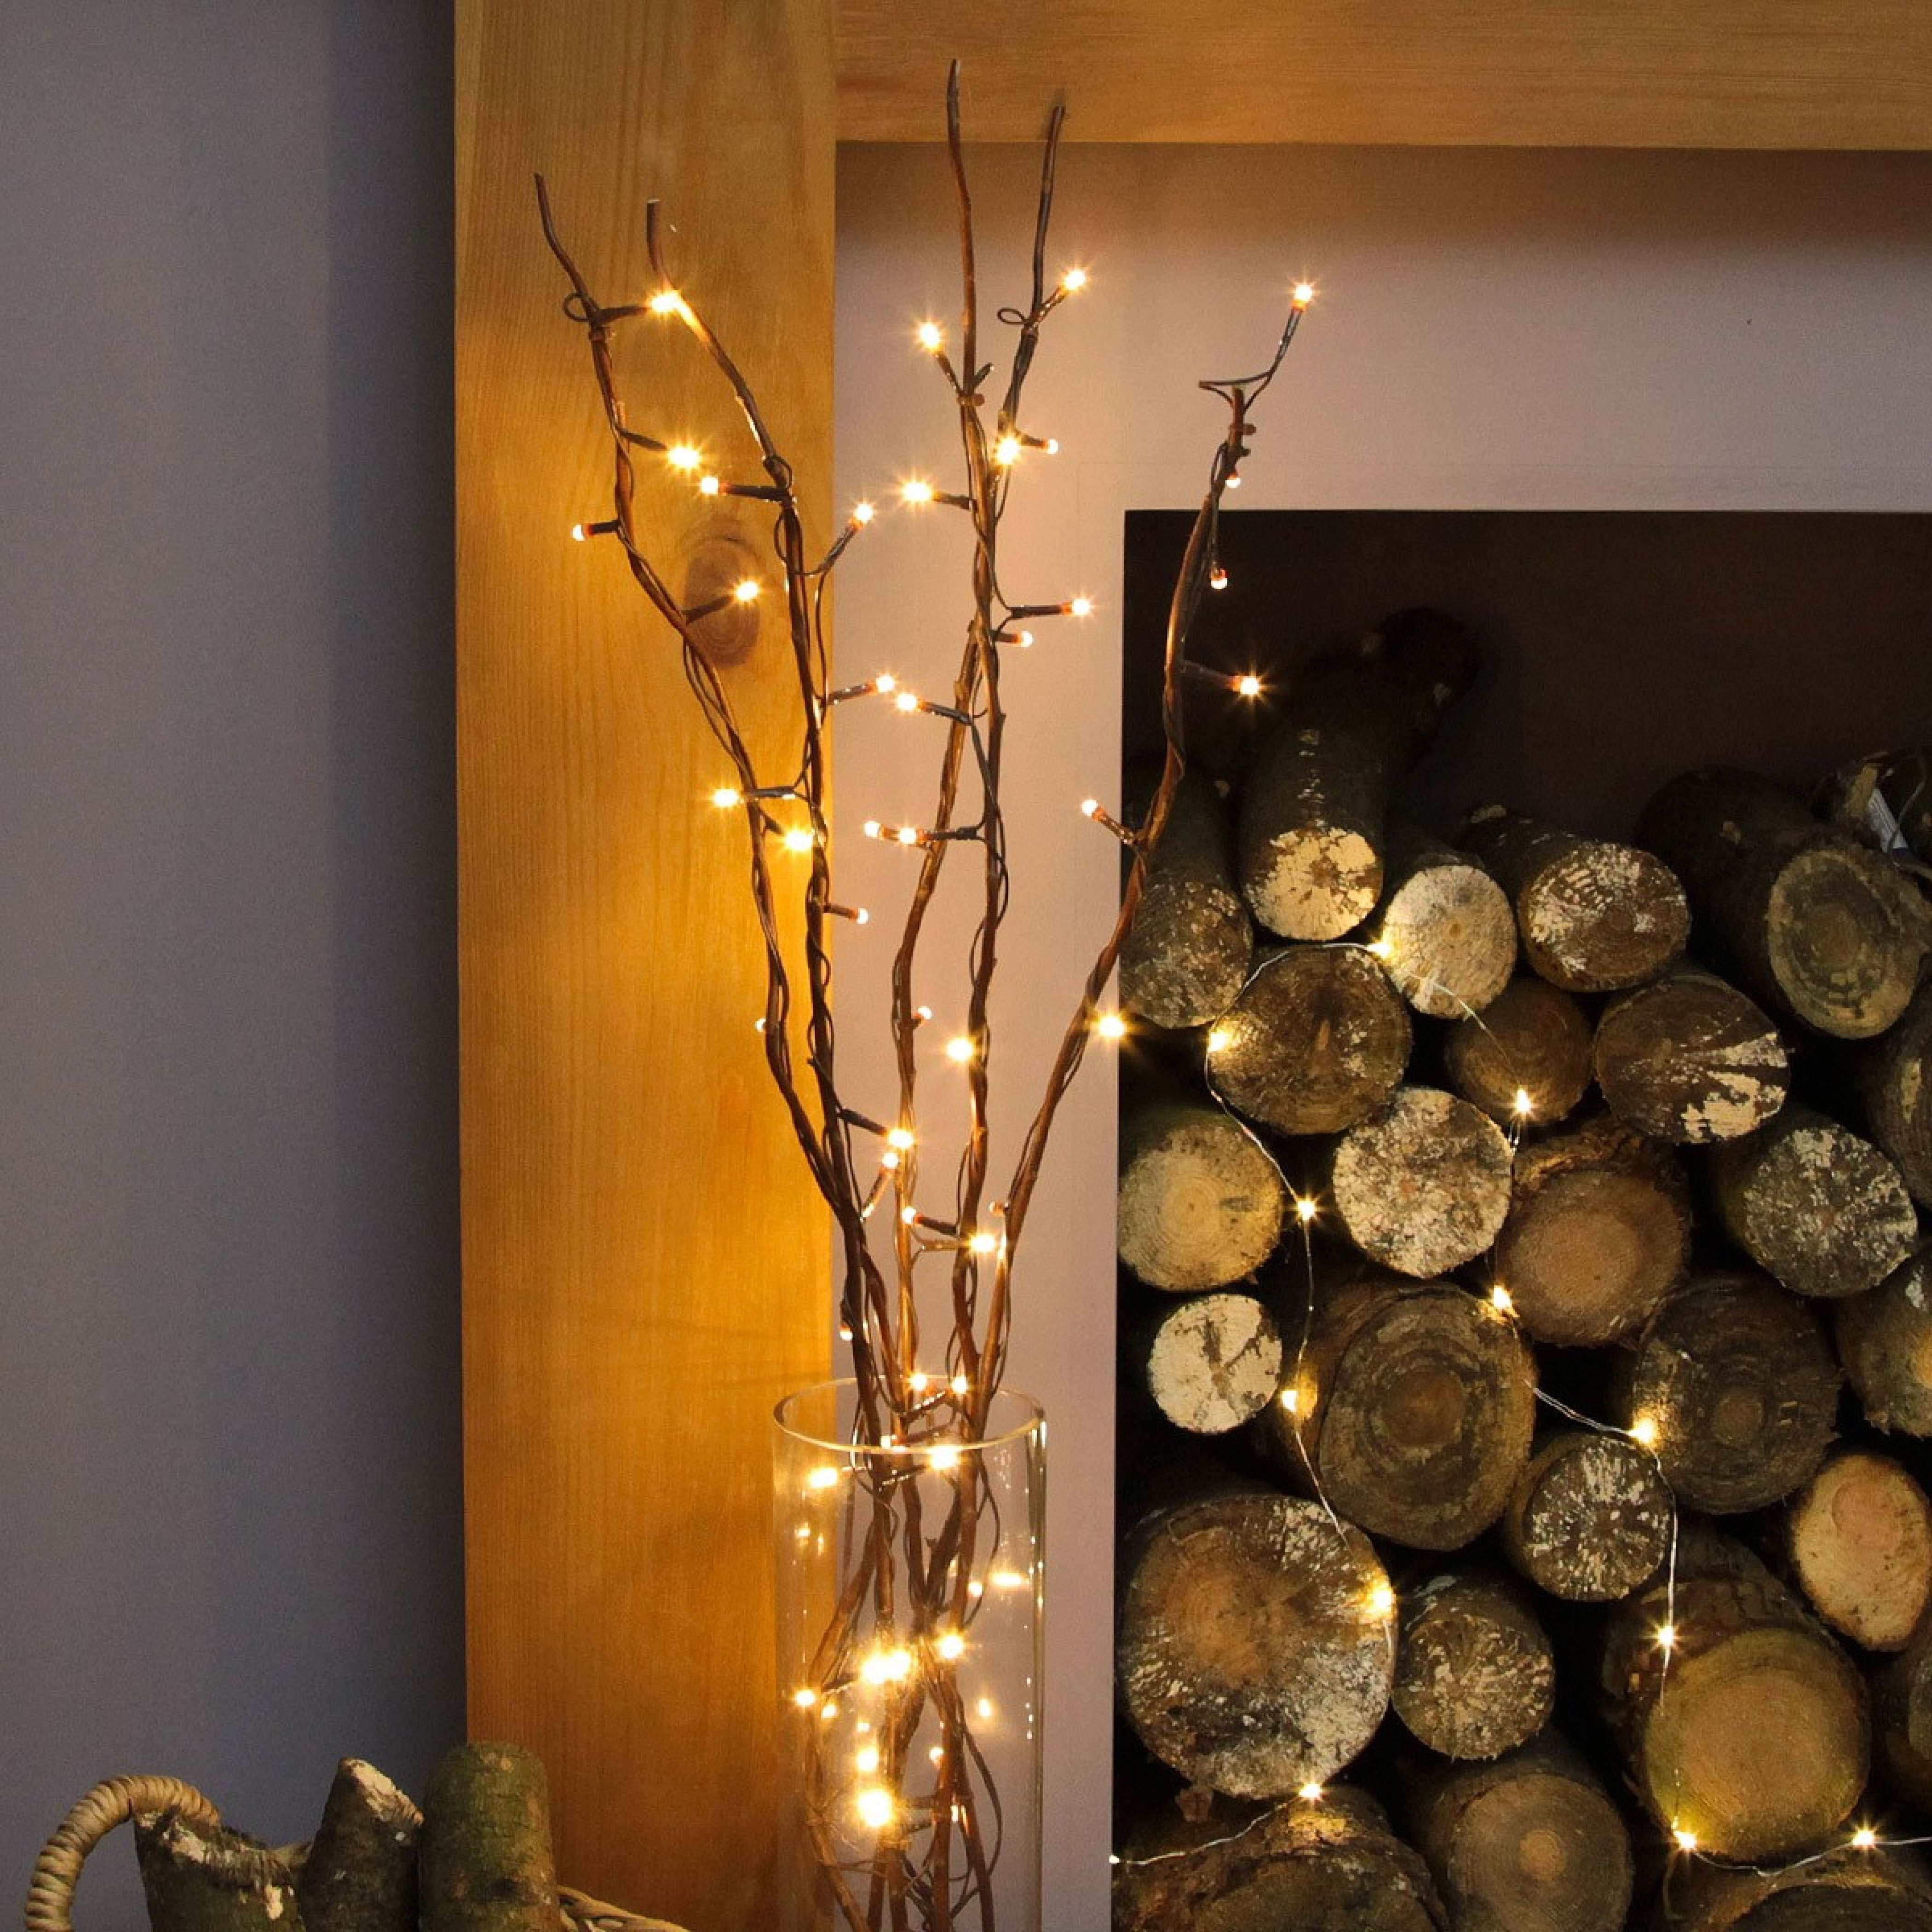 ... 5 decorative brown willow twig lights, 50 warm white leds ... MGKYOFN